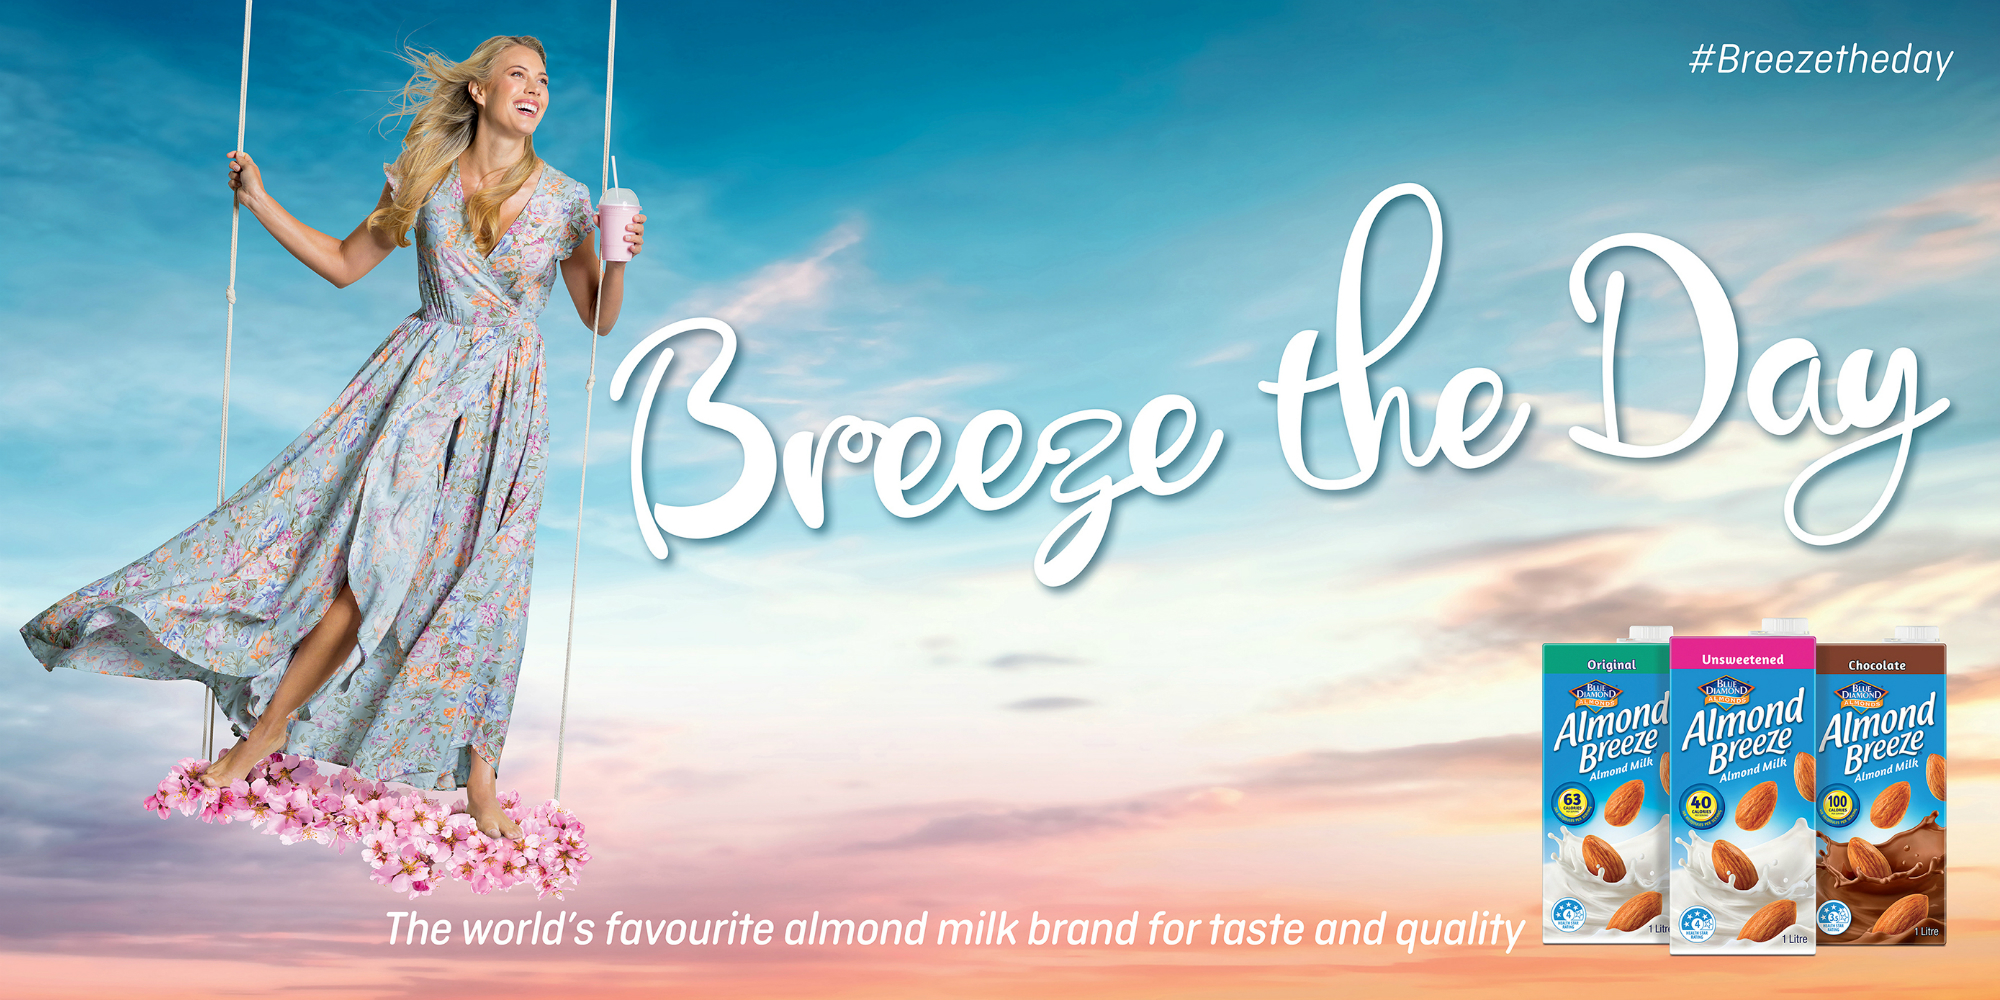 Almond Breeze Launches $3m Campaign Via Daylight Agency photo